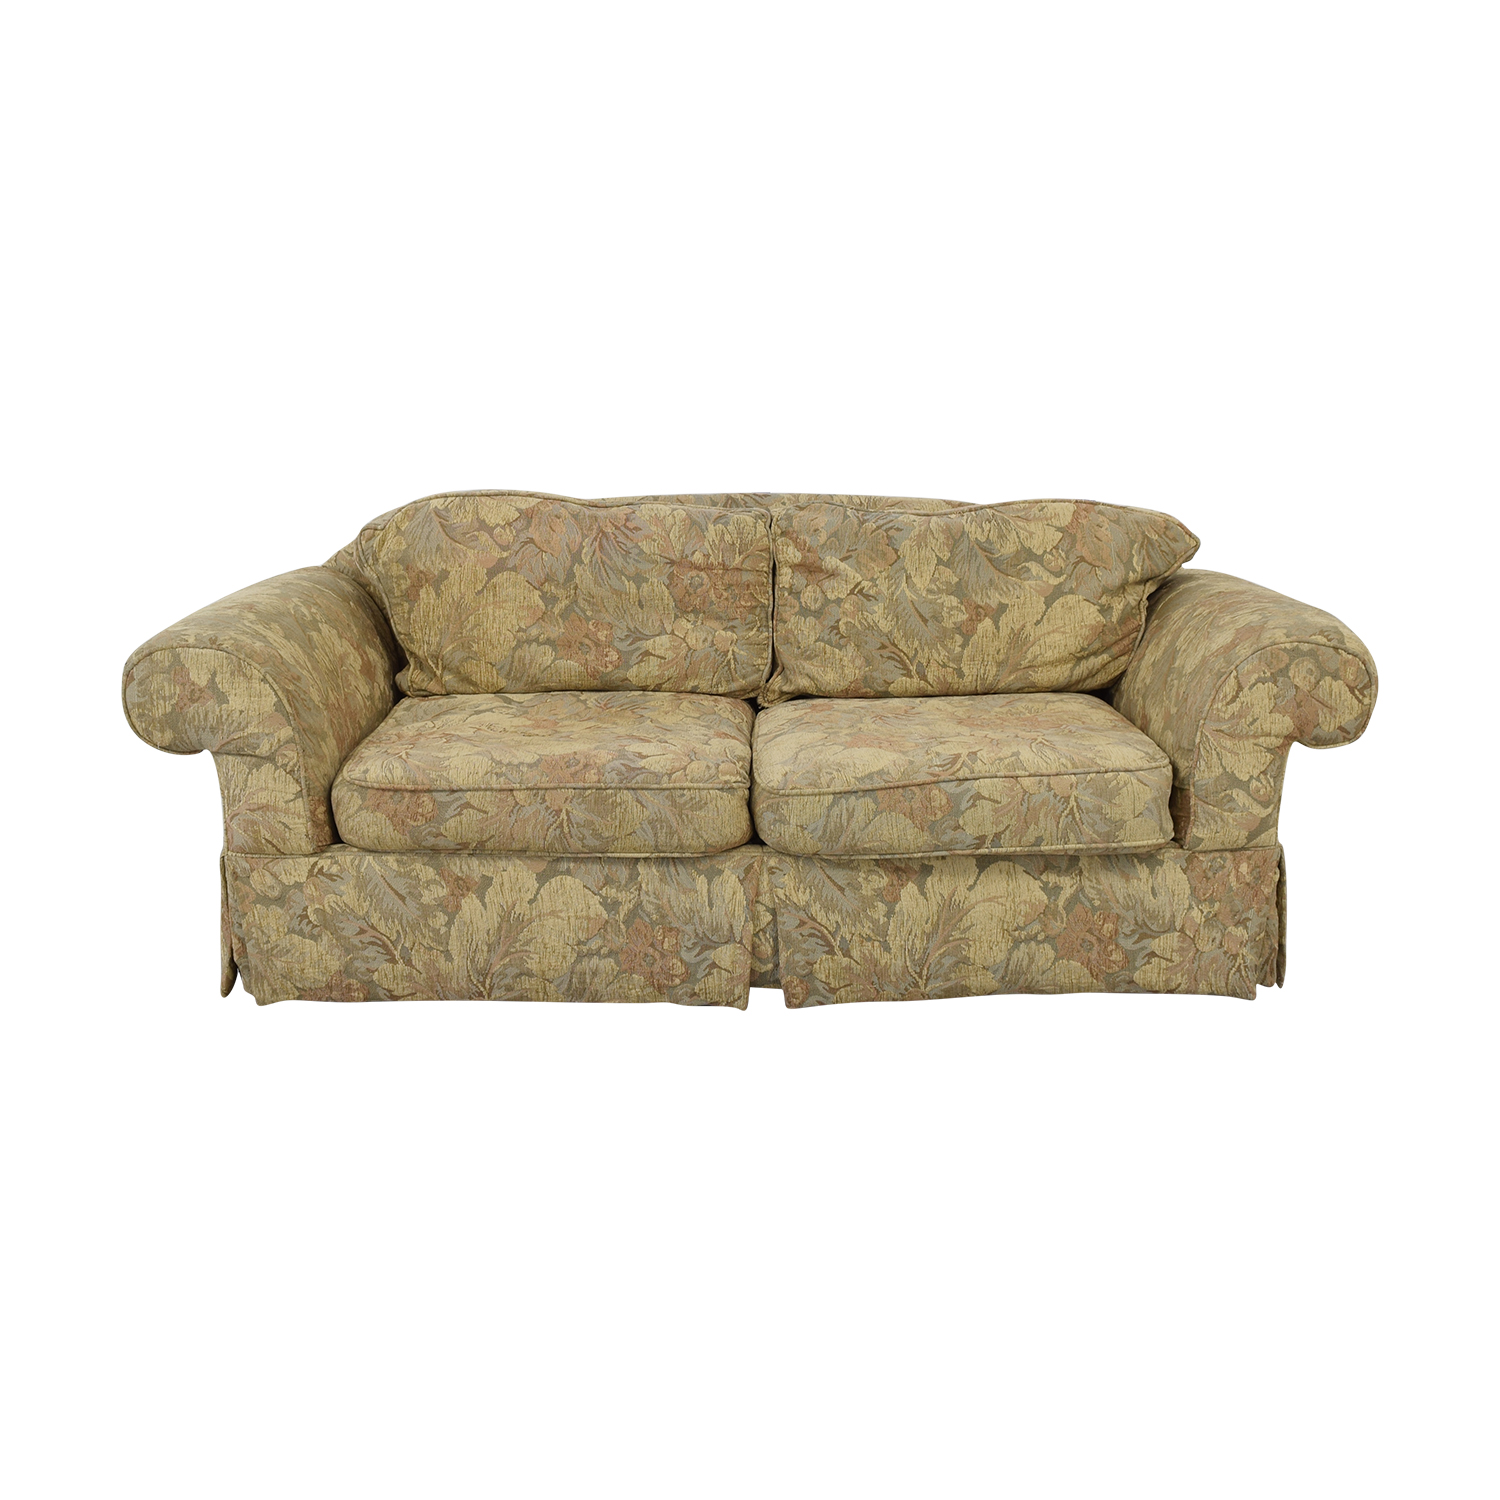 Bernhardt Two Cushion Sofa Bernhardt